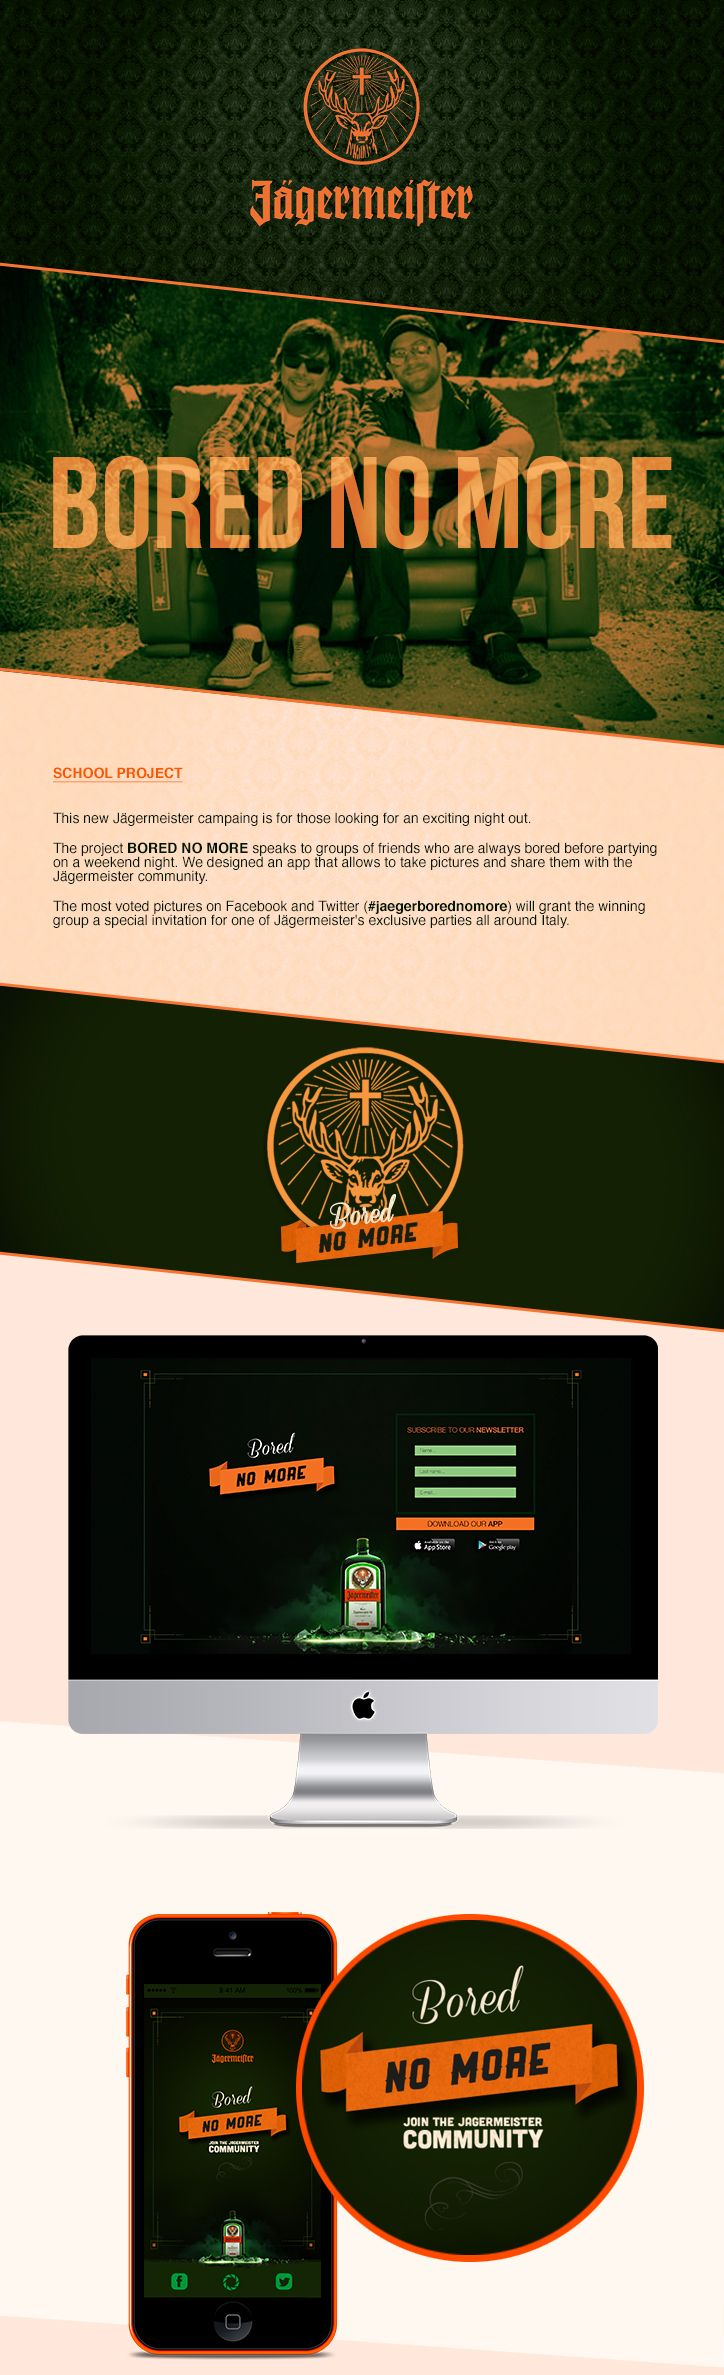 Jägermeister Campaign - BORED NO MORE  https://www.behance.net/gallery/Jaegermeister-Campaign-BORED-NO-MORE/15606569